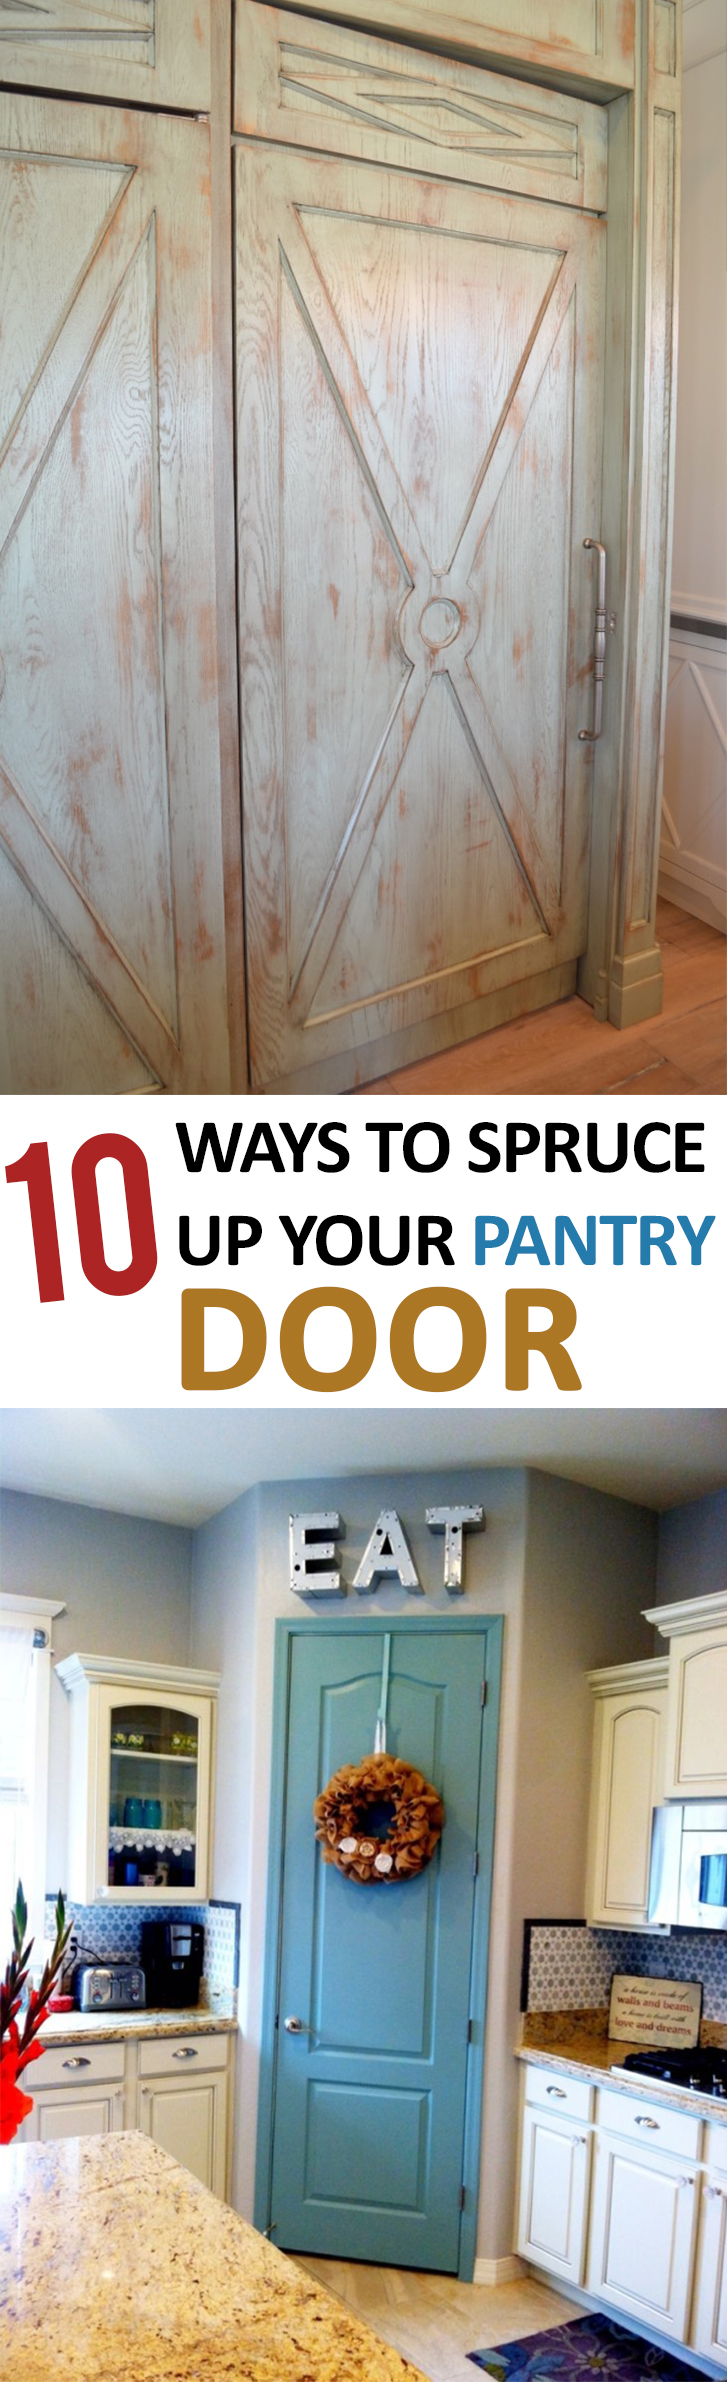 10 Ways to Spruce Up Your Pantry Door